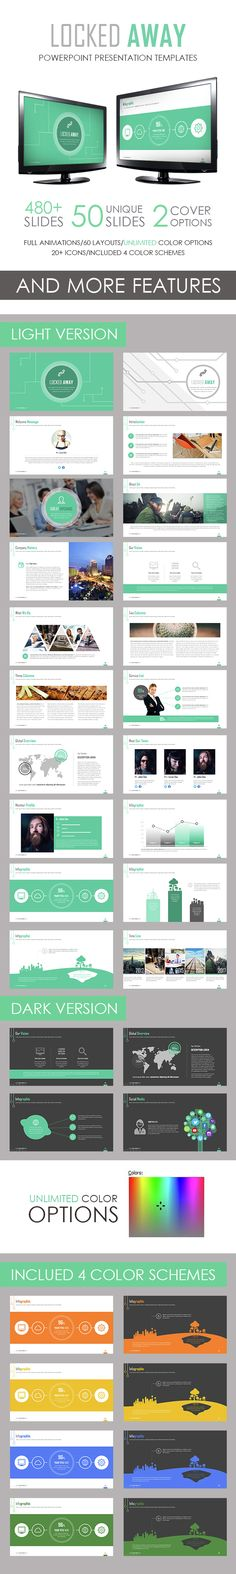 3D Printing (PowerPoint Templates) 3D Printing, Template and 3d - business presentation template